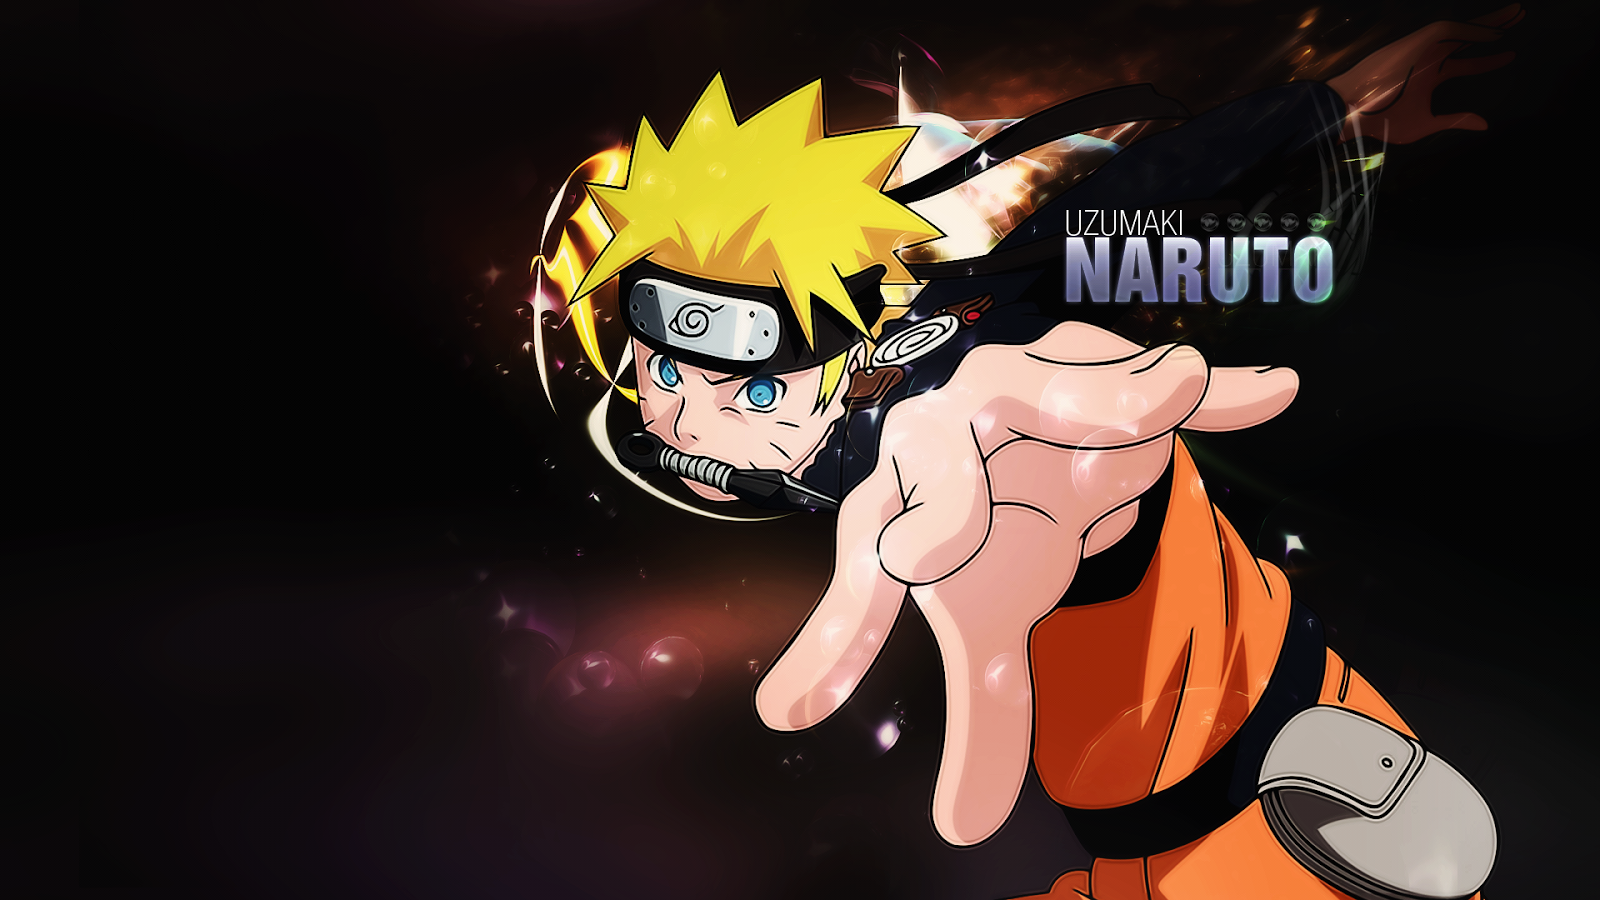 wallpapers hd for mac: Naruto Shippuden Wallpaper HD